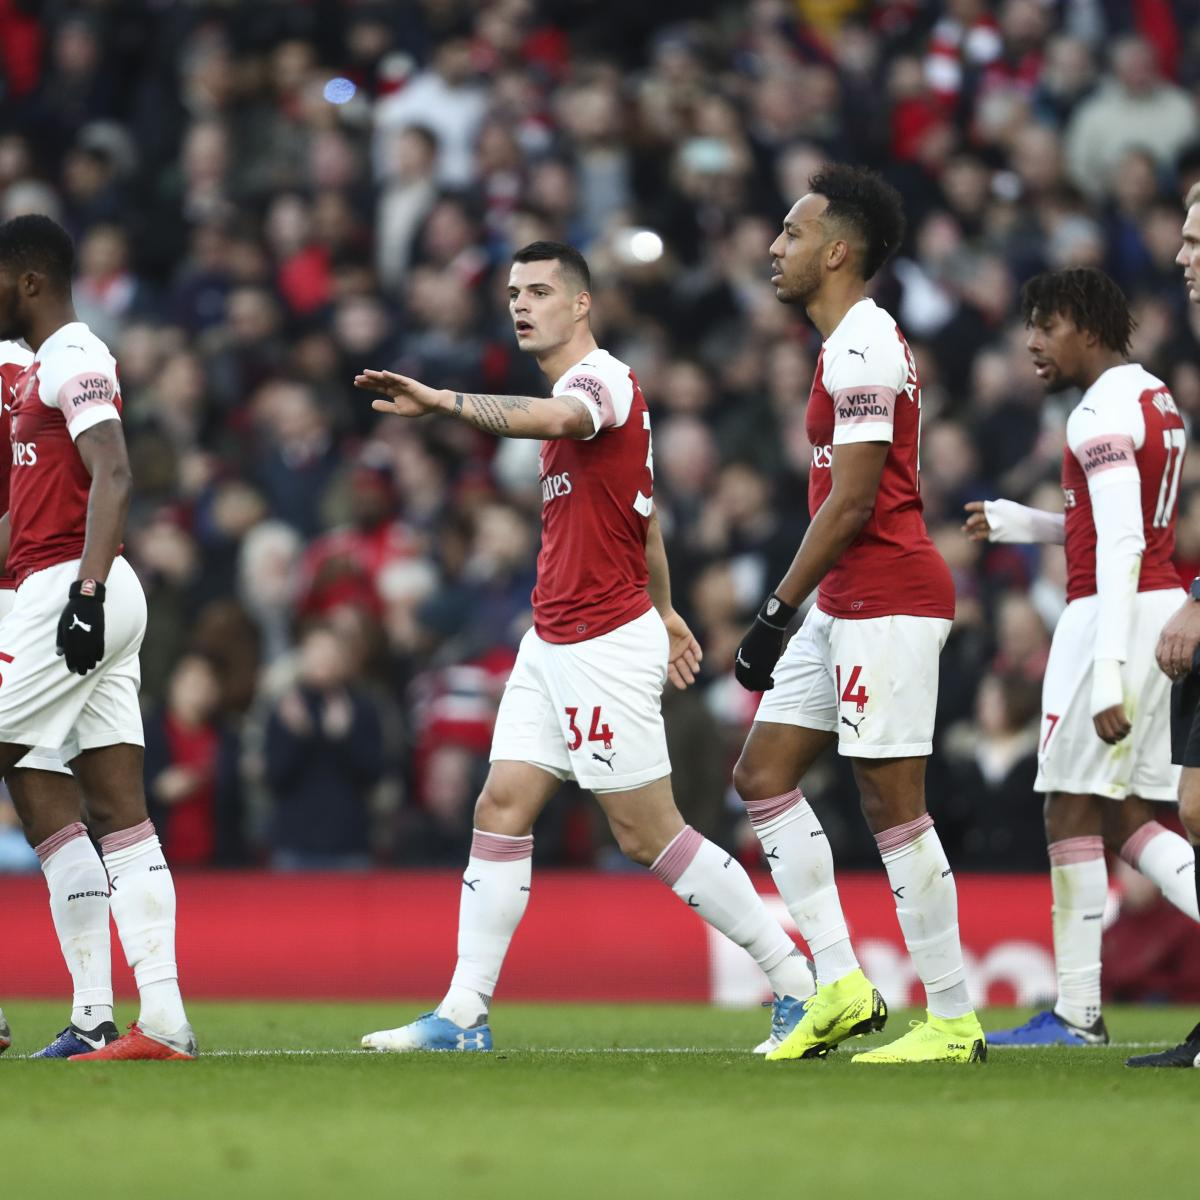 Arsenal Vs Tottenham Live Score Highlights From Premier: EPL Table: Tuesday's Week 21 Results, Scores And 2019